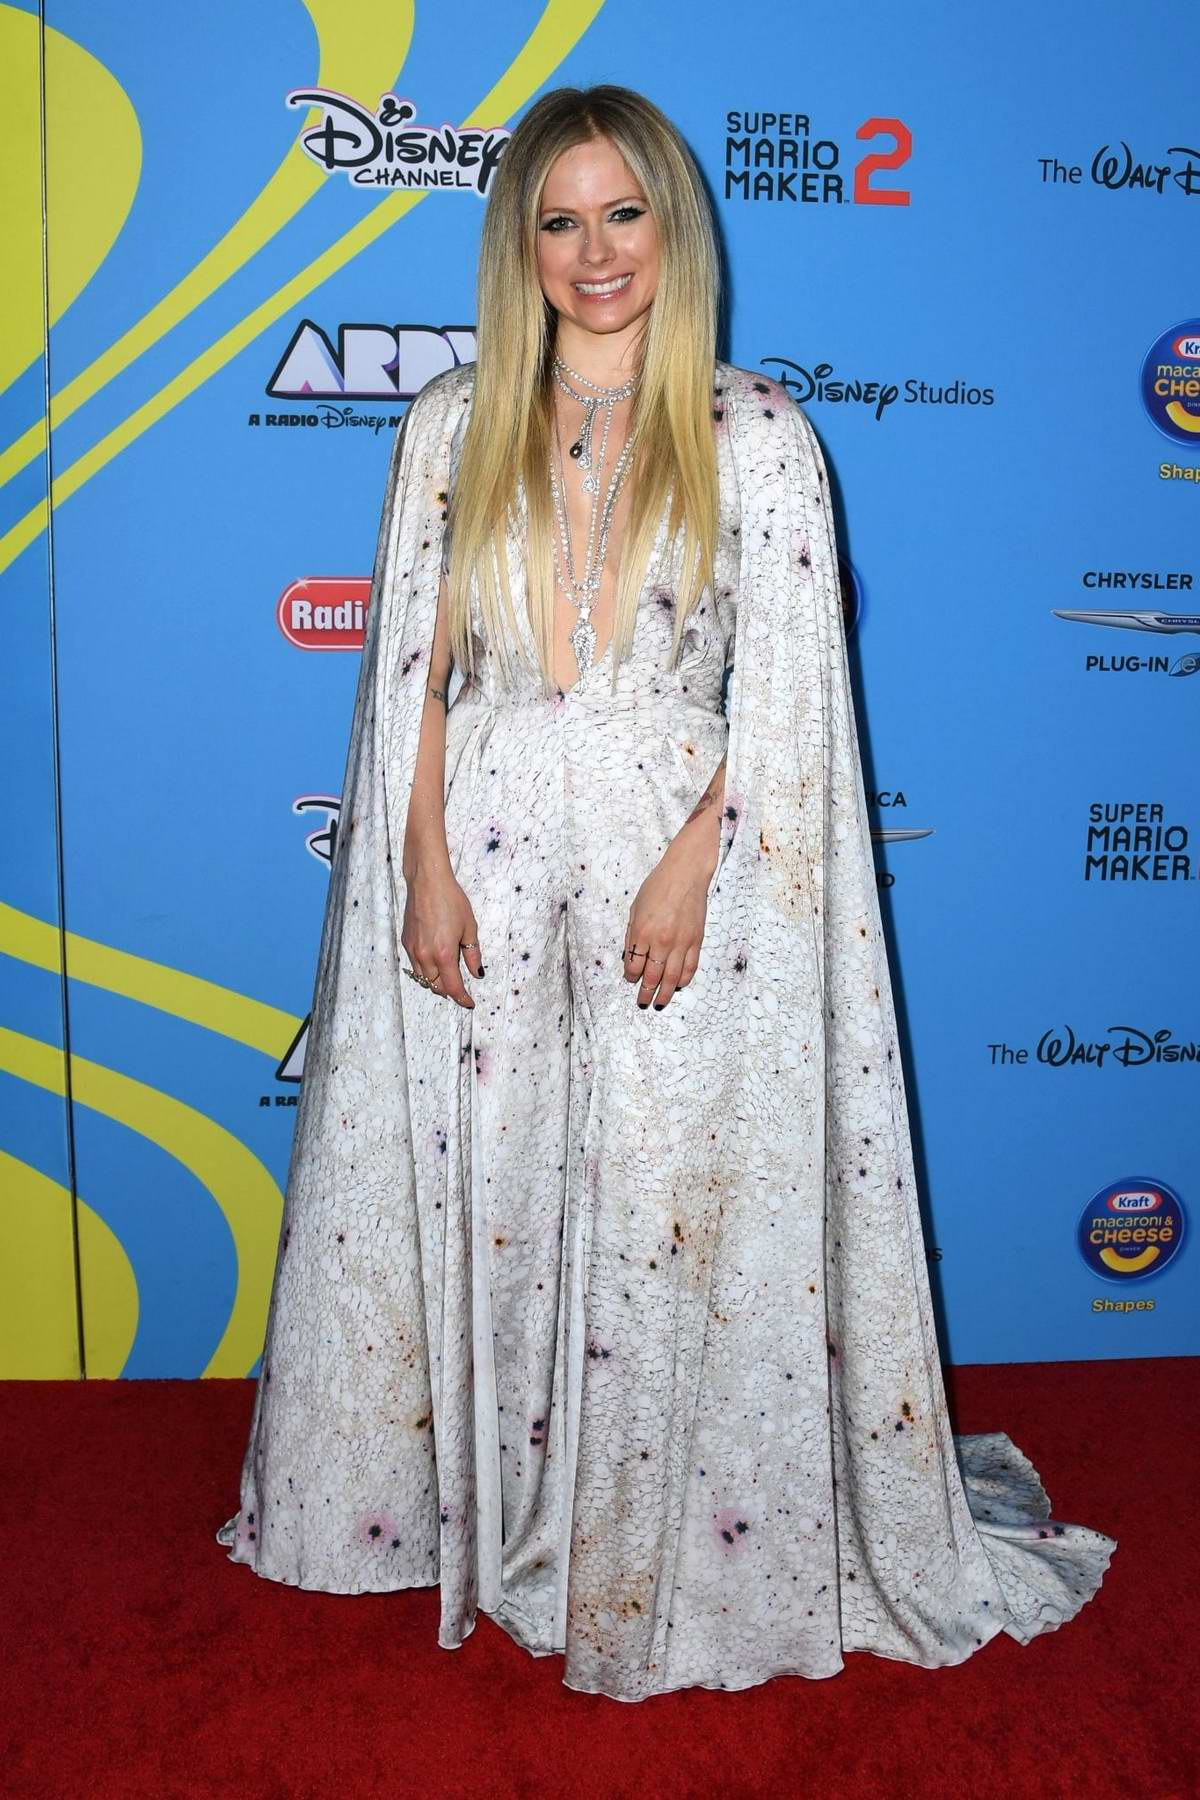 Avril Lavigne attends the 2019 Radio Disney Music Awards (ARDYs 2019) at the CBS Radford Studios in Studio City, California